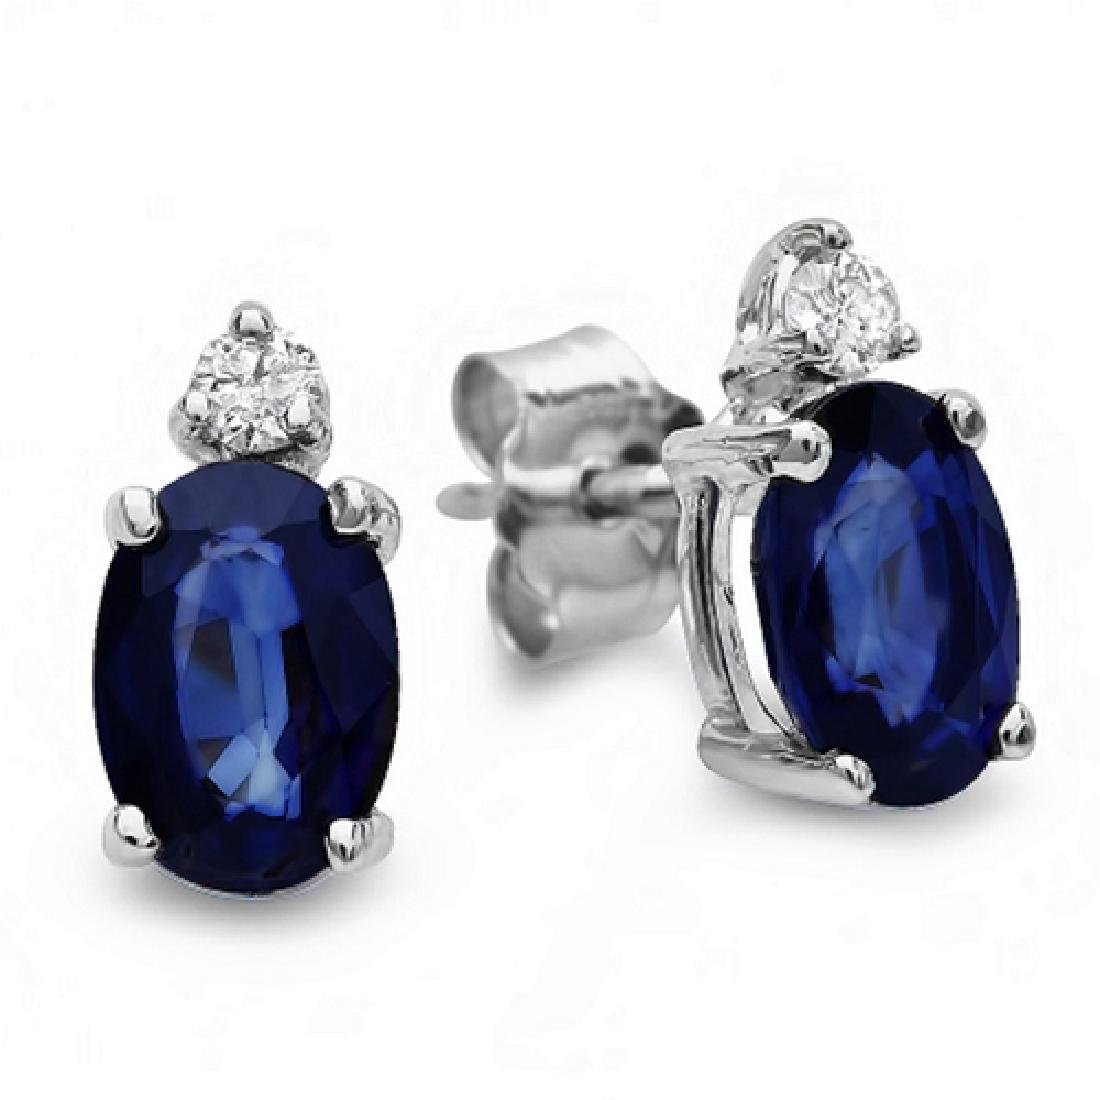 2.56 Carat Natural Sapphire 18K Solid White Gold